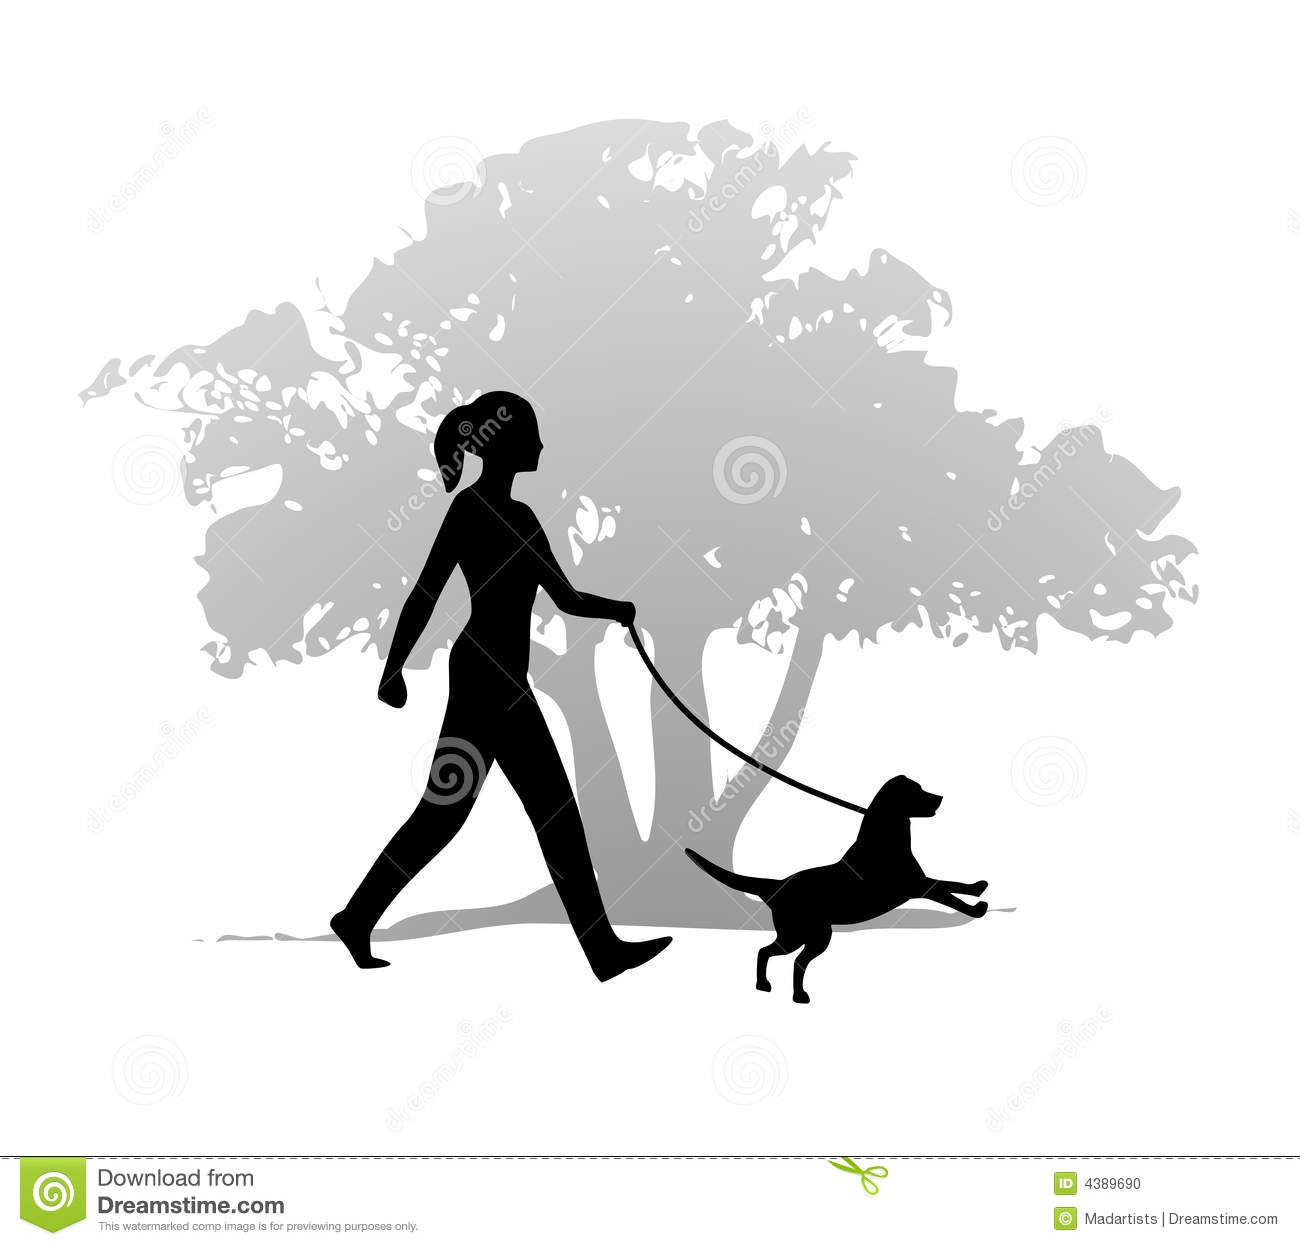 Lady walking dog silhouette clipart.